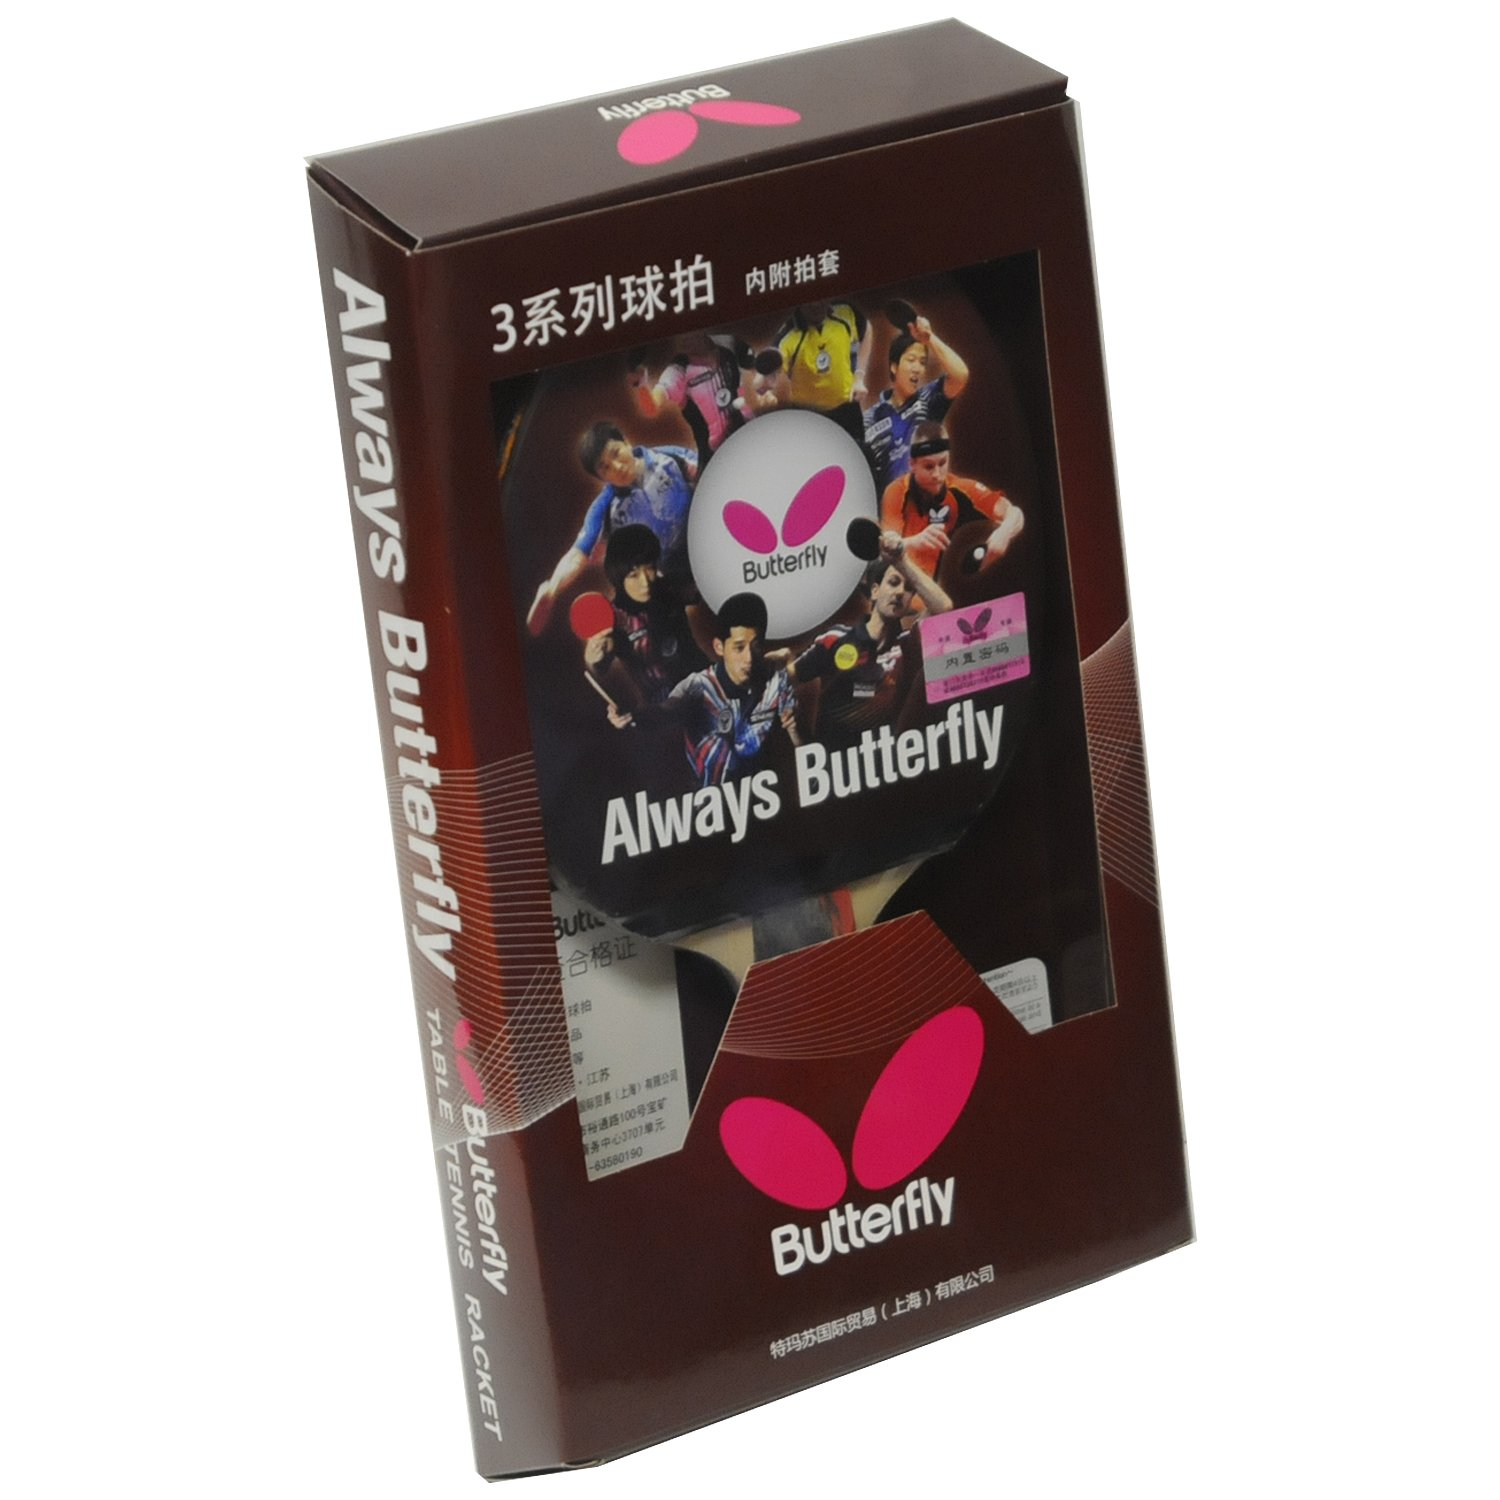 Butterfly 303 Table Tennis Racket Set - 1 Ping Pong Paddle - Pips In and Out Rubber - Free Case - Gift Box - ITTF Approved